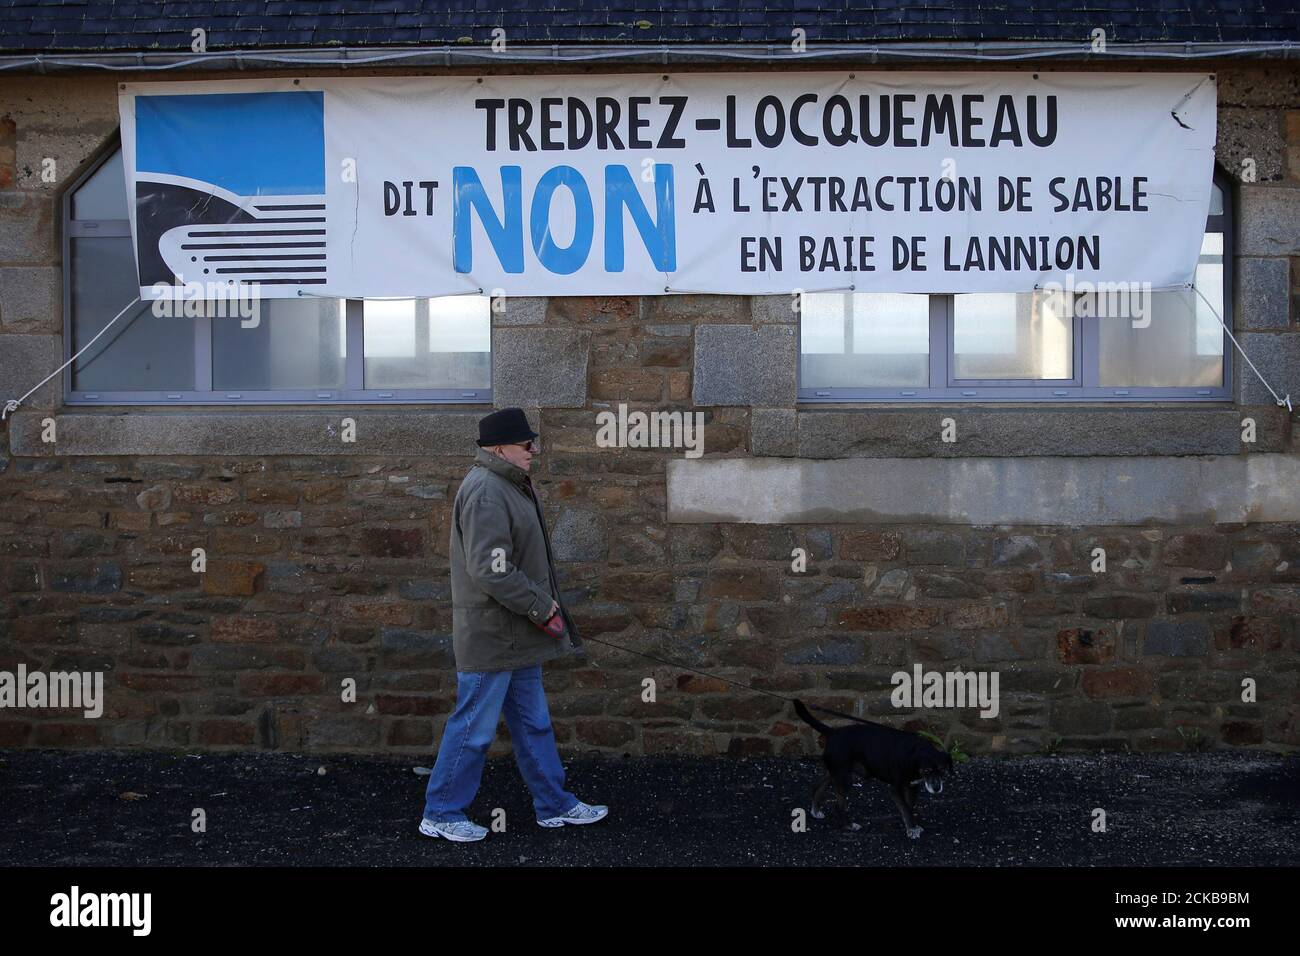 """A man walks in front of a banner which reads: """"Tredrez-Locquemeau say No to the extraction of sand in the bay of Lannion"""" in Tredrez-Locquemeau, December 17, 2016. REUTERS/Stephane Mahe Stock Photo"""